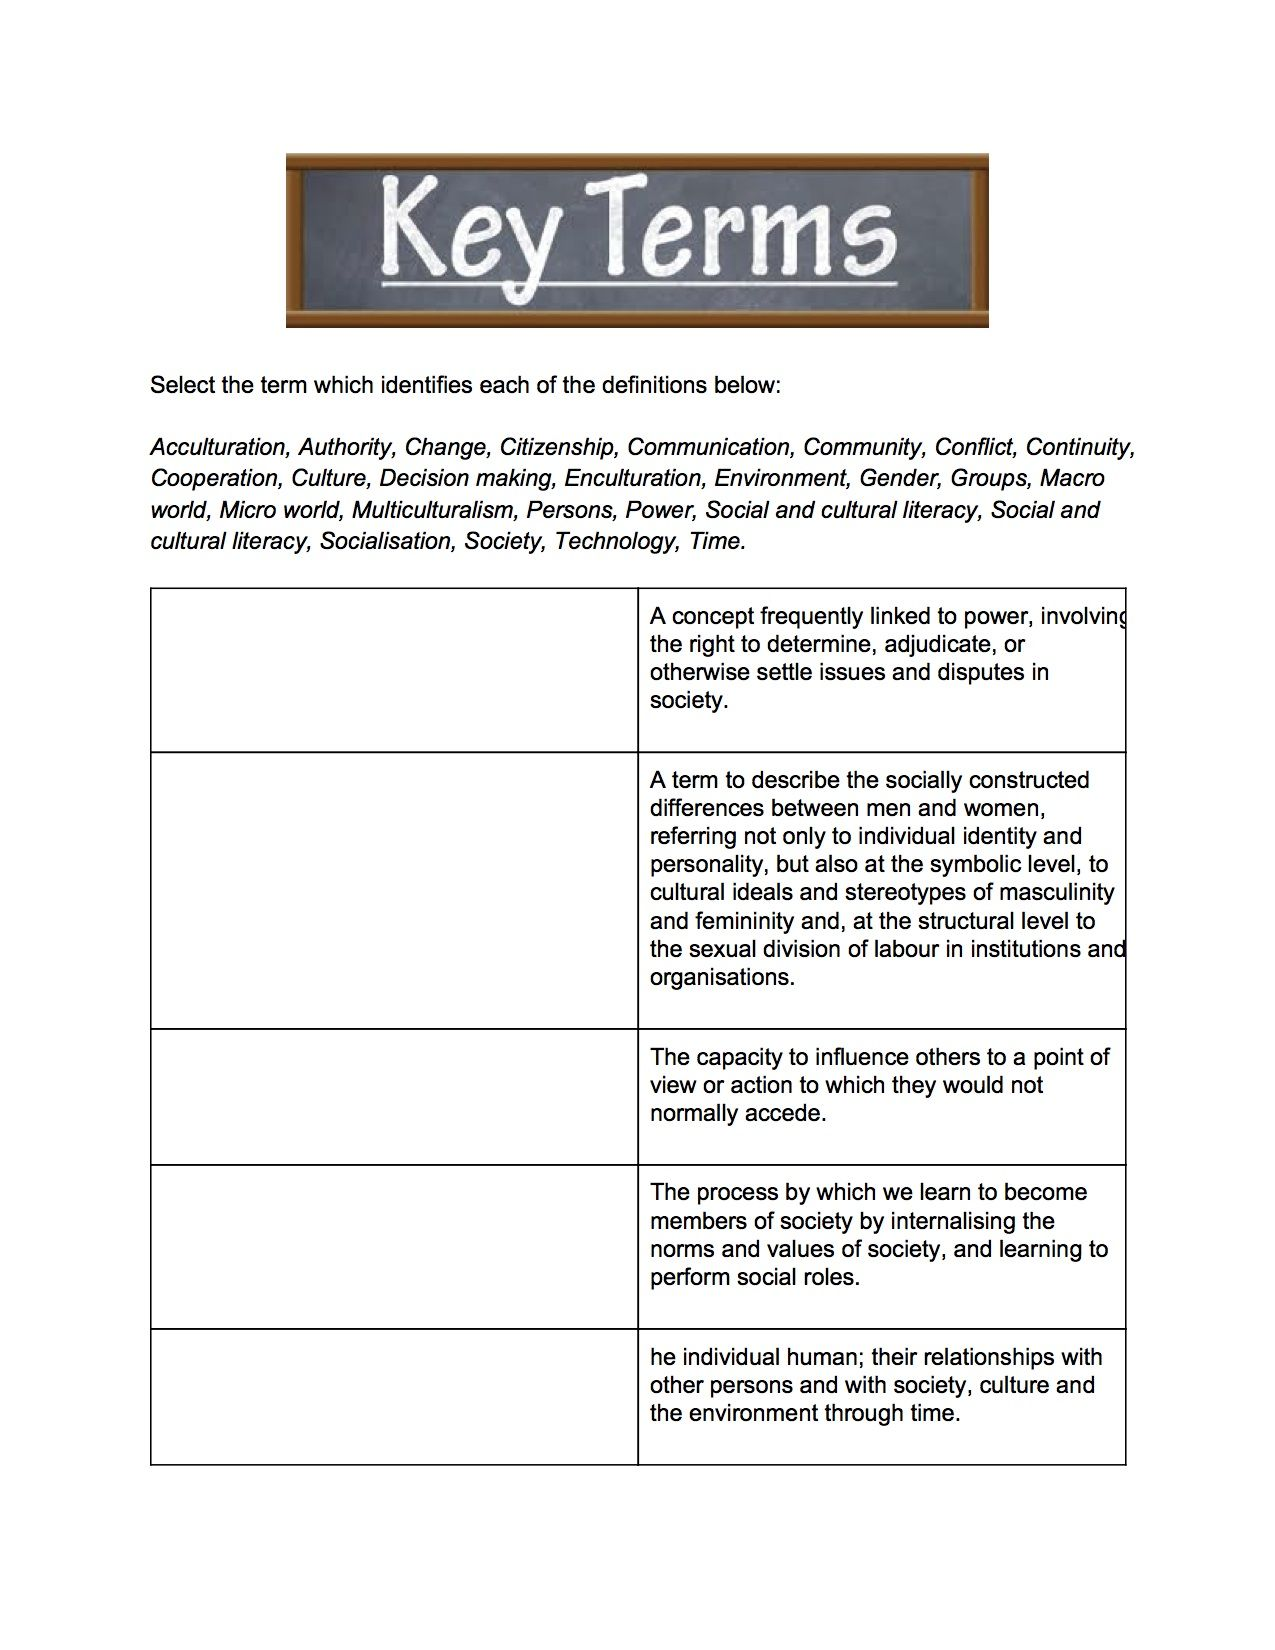 Key Terms This Key Terms Resource Is A Work Sheet For